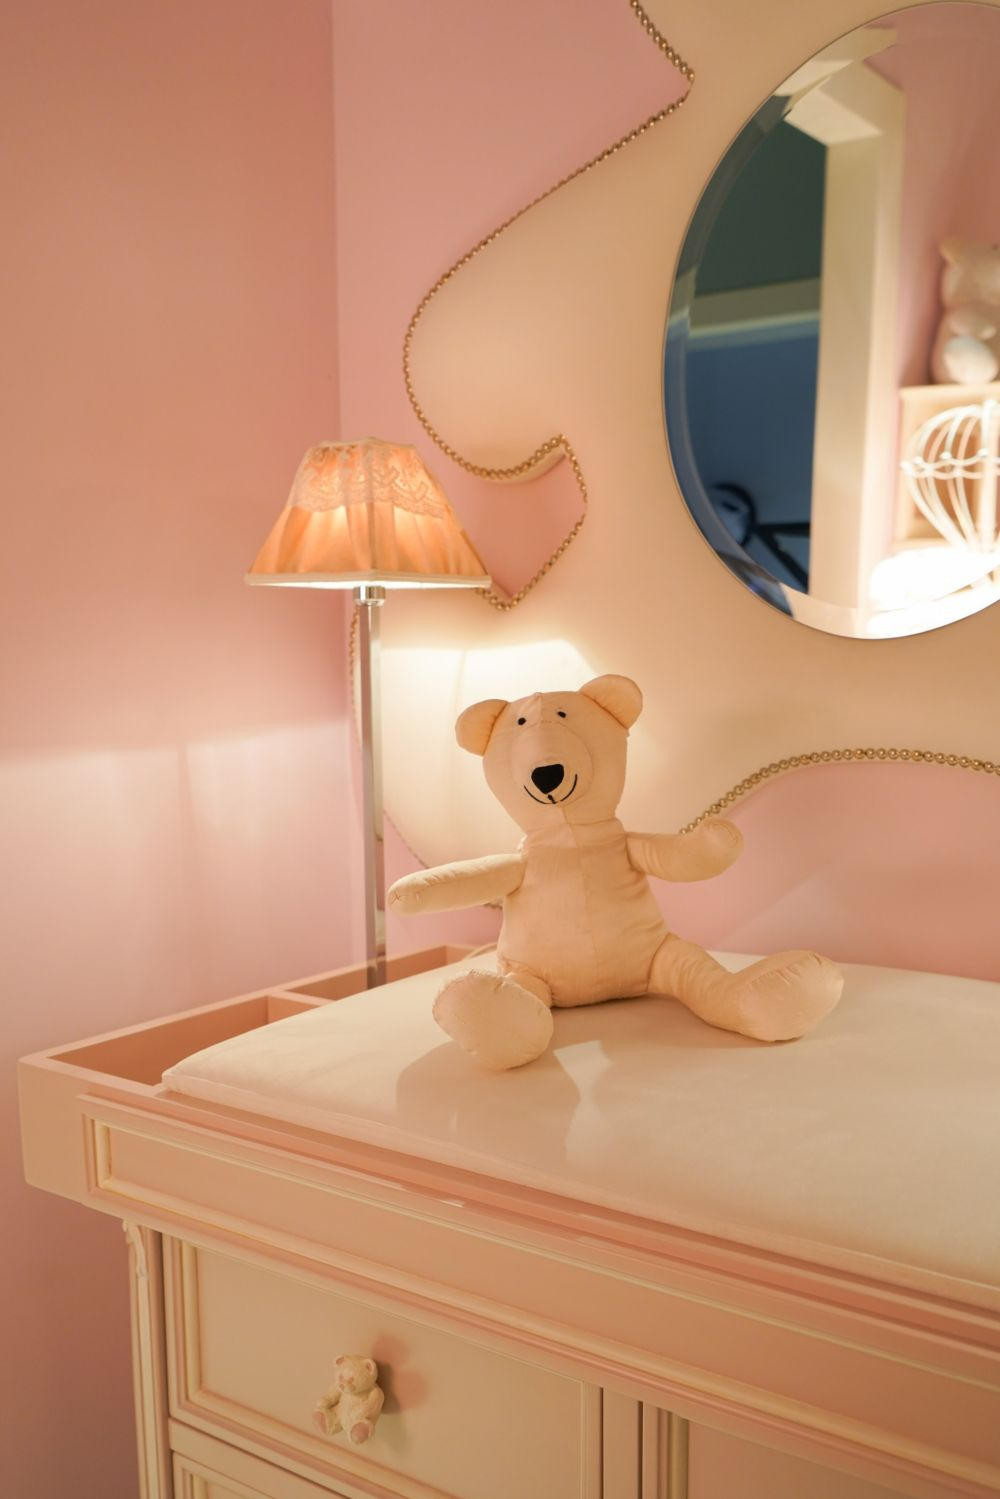 Notice the cute little teddy bear drawer knobs installed on this changing table. They match the mirror